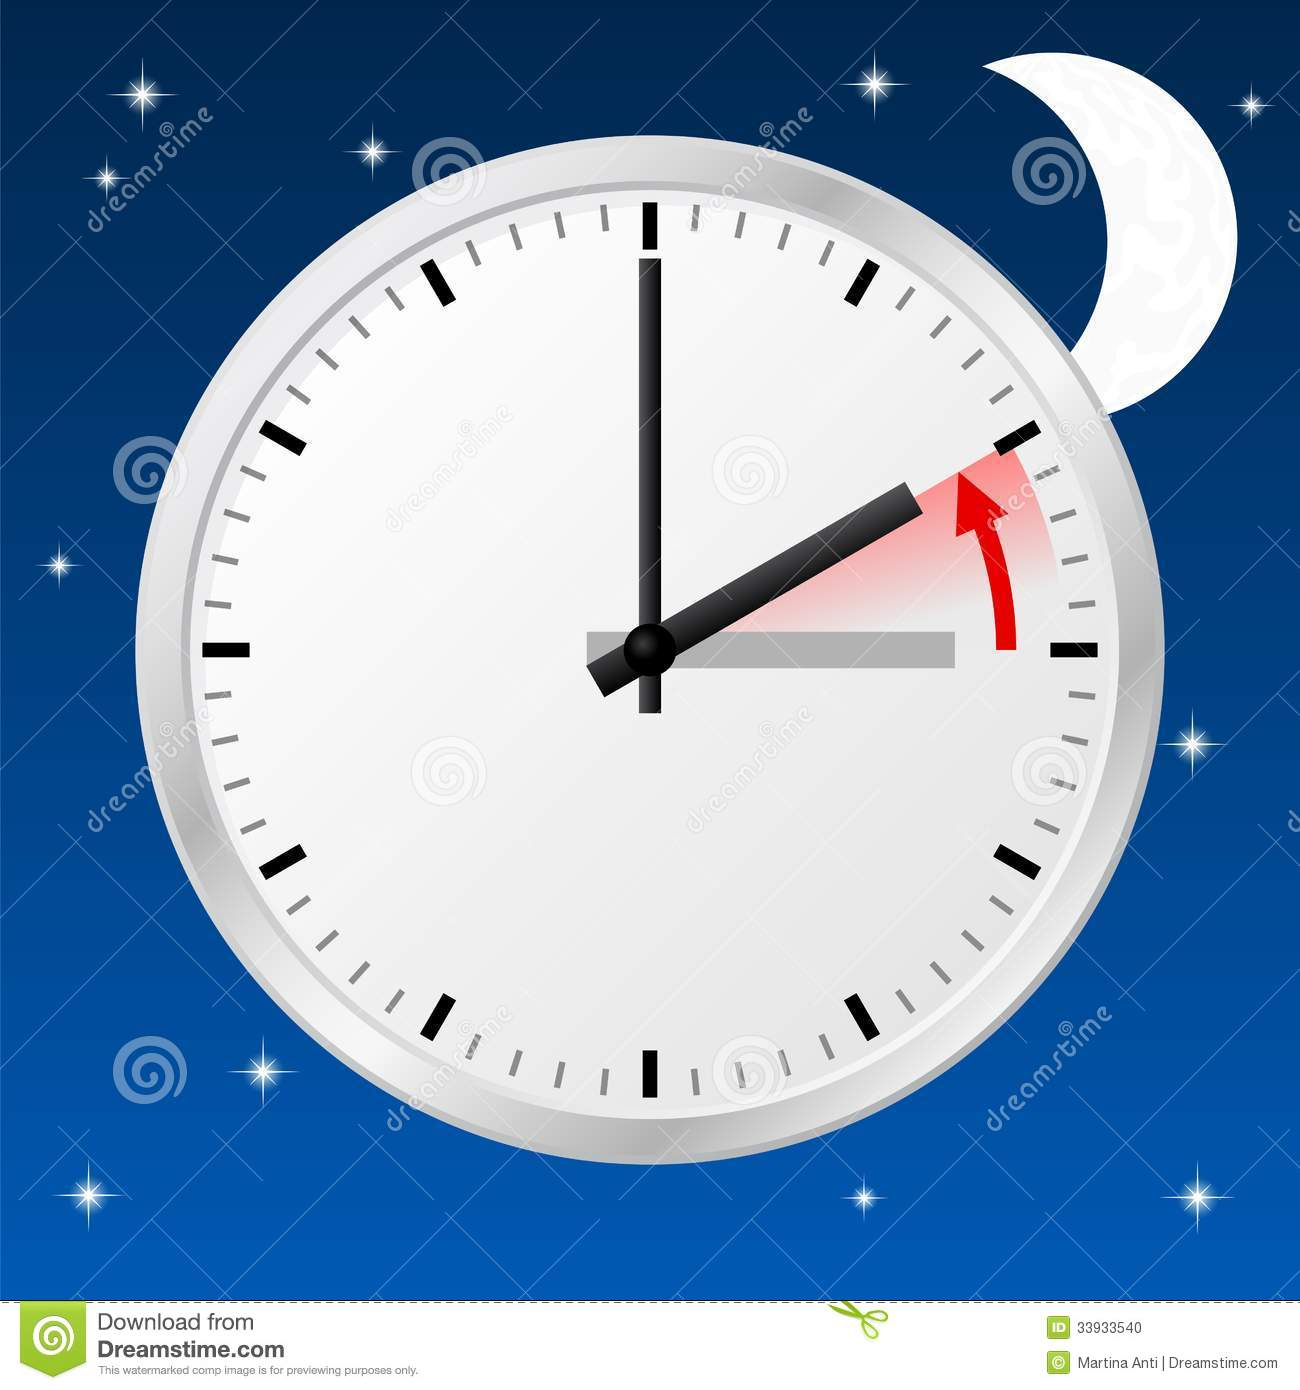 what time does the time change 1